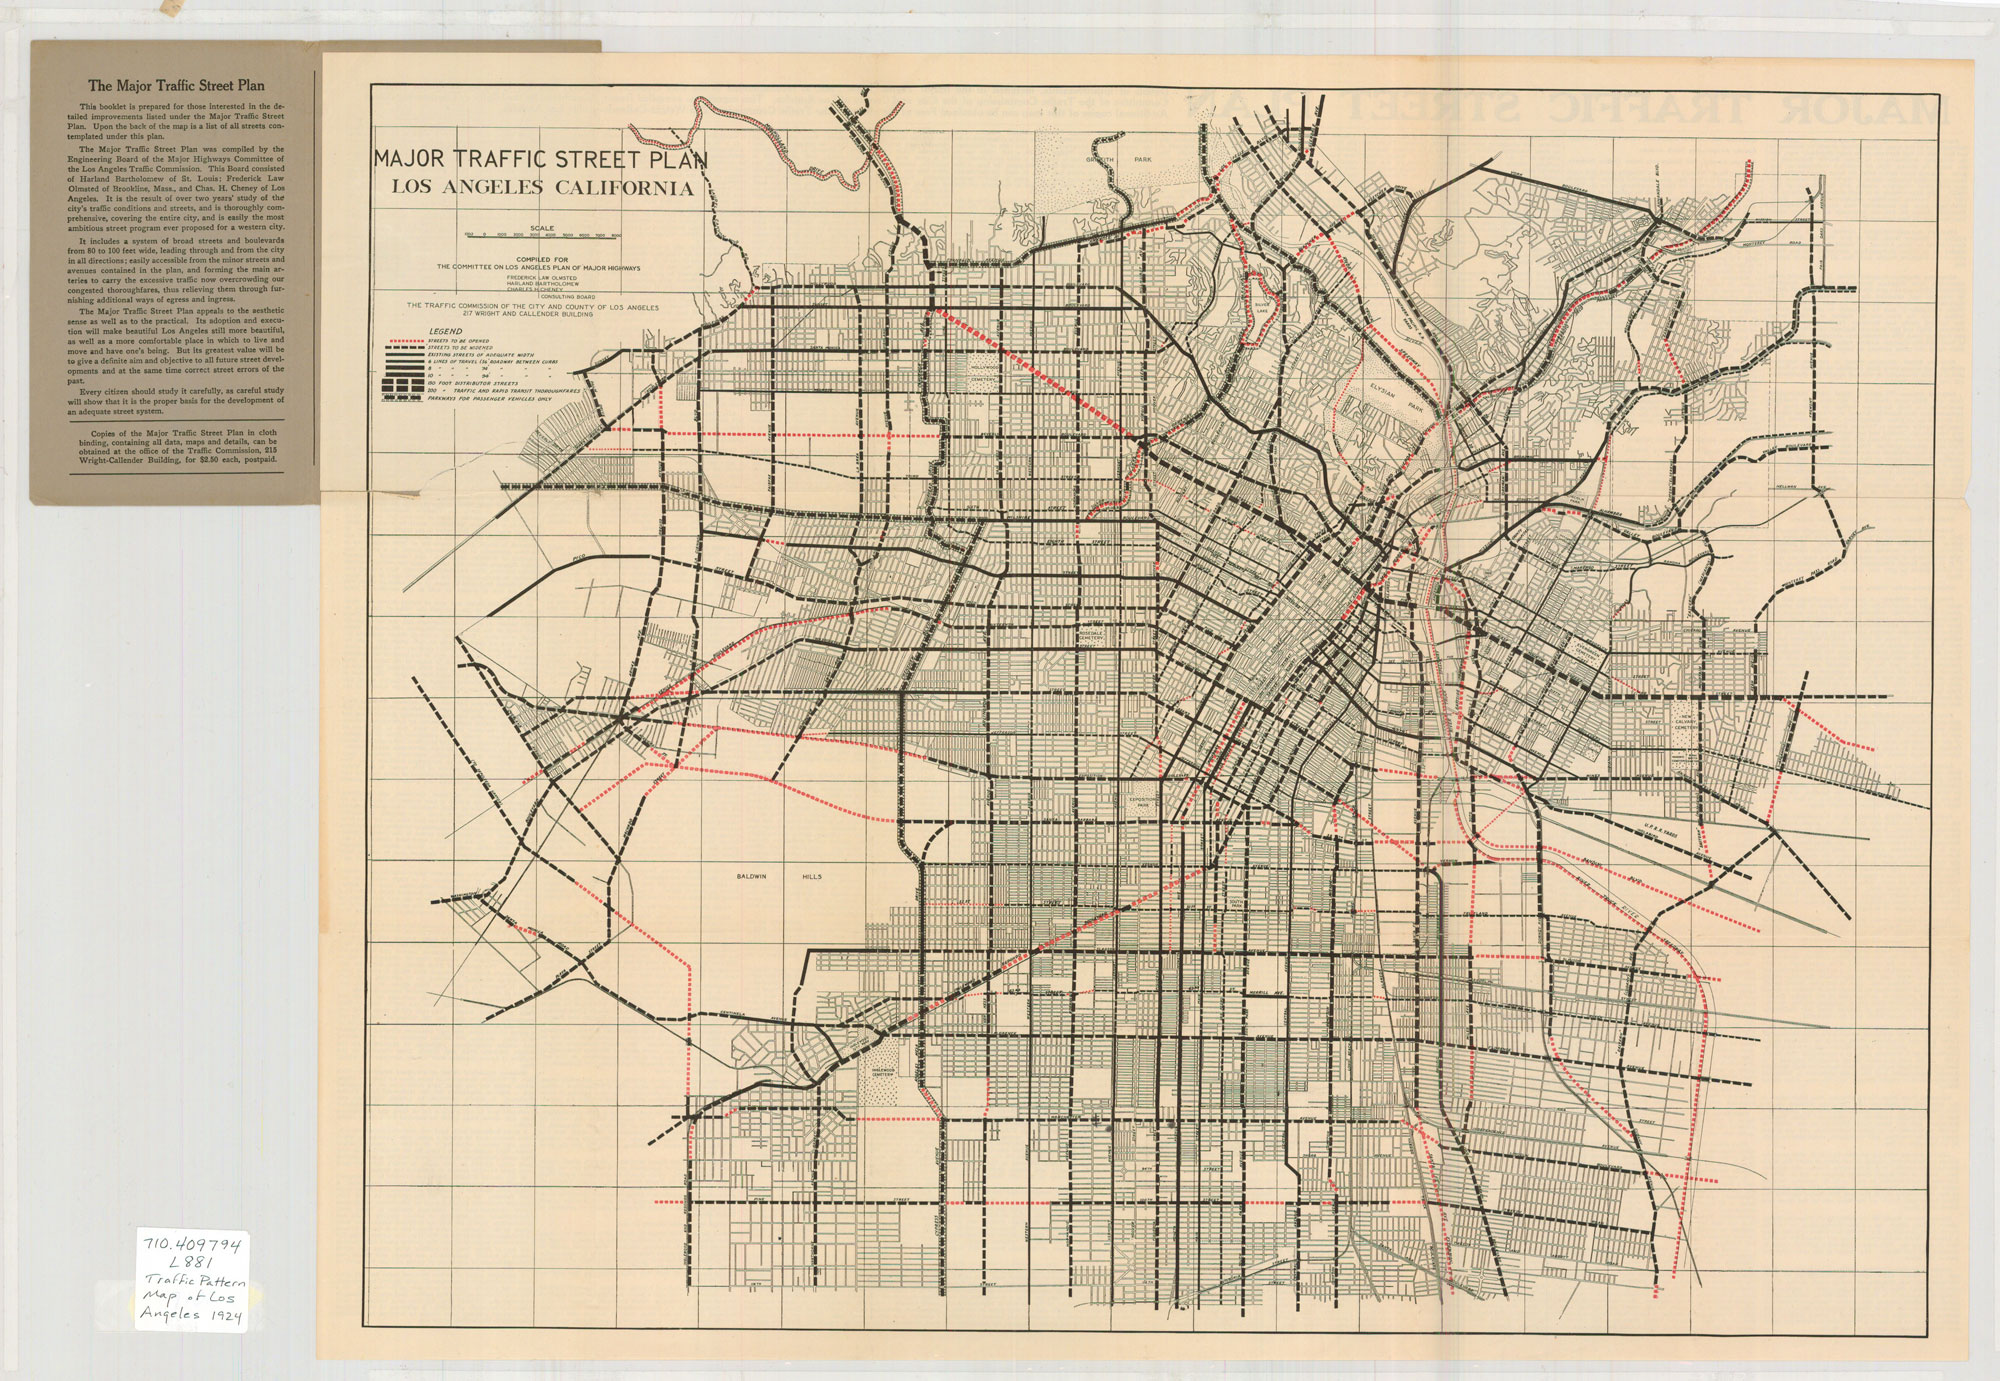 CityDig: How Three Men Tried To Solve L.A.'s Traffic Problem ... on city of kenner map, city of lone tree map, city of redwood city map, city of norco map, city of san buenaventura map, city of alabama map, city of joshua tree map, city of yuba city map, city of las vegas area map, city of louisiana map, city of youngstown map, city of lexington map, city of wisconsin map, city of alamo heights map, city of arizona state, city of oak park map, city of plant city map, city of oklahoma map, city md map, city of brooklyn map,